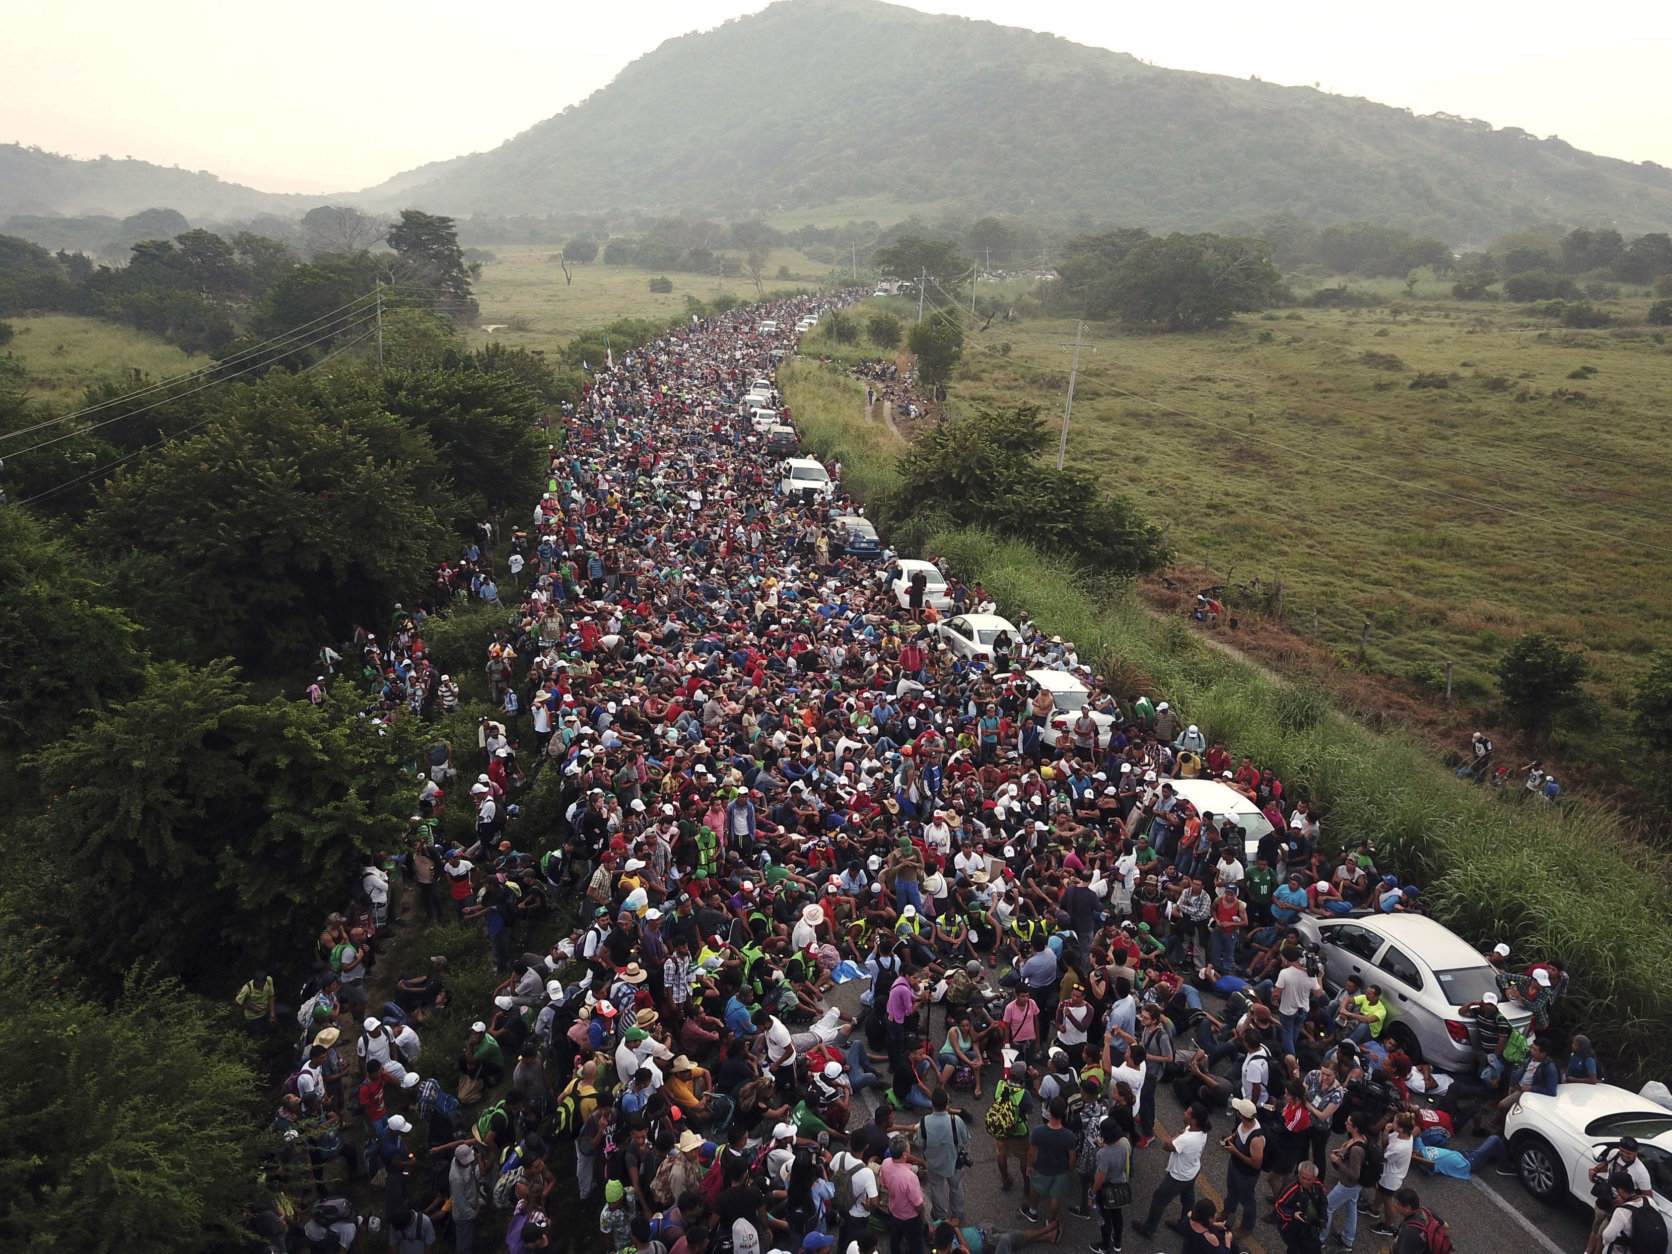 Members of a U.S.-bound migrant caravan stand on a road after federal police briefly blocked their way outside the town of Arriaga, Mexico, on Oct. 27, 2018. (AP Photo/Rodrigo Abd)